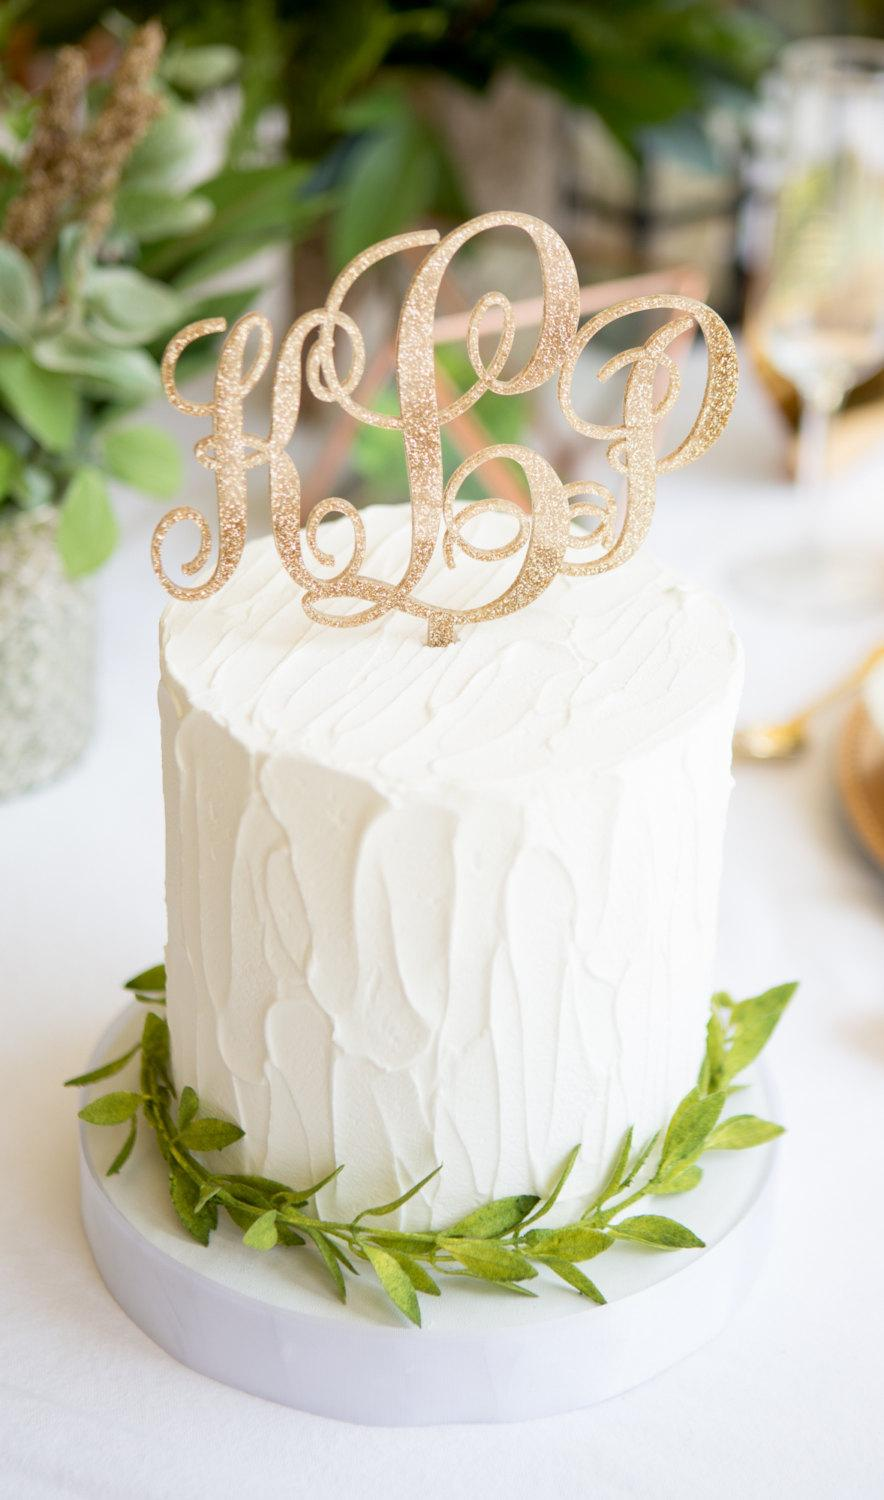 زفاف - Monogram Cake Topper for Wedding, Rustic Wood or Glitter Gold Cake Decor, Script Monogram Personalized for Wedding or Party (Item - MNT900)